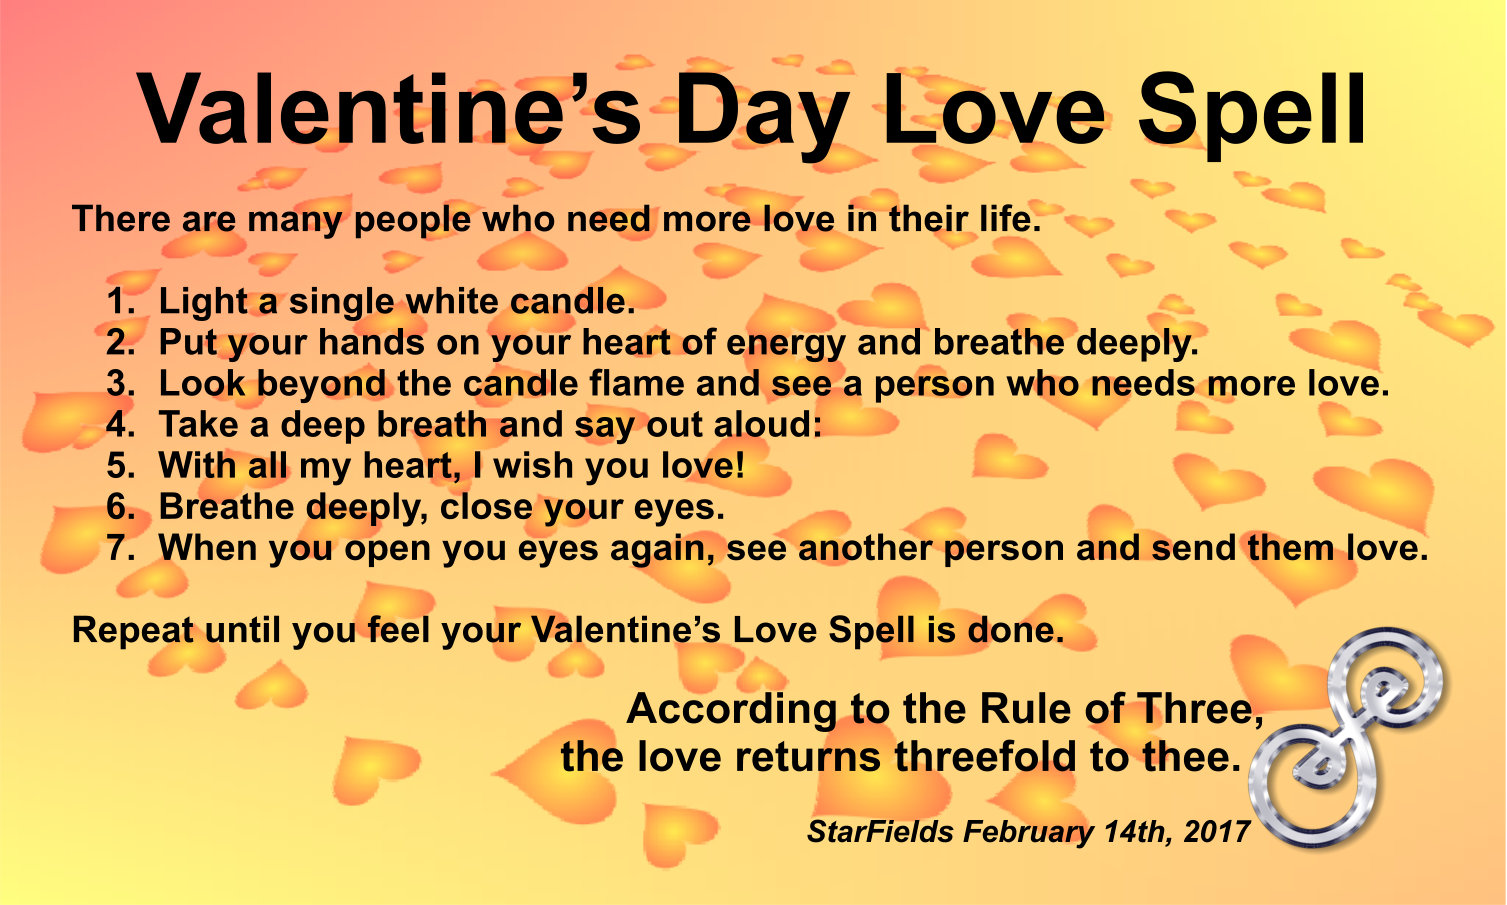 Valentine's Day Love Spell